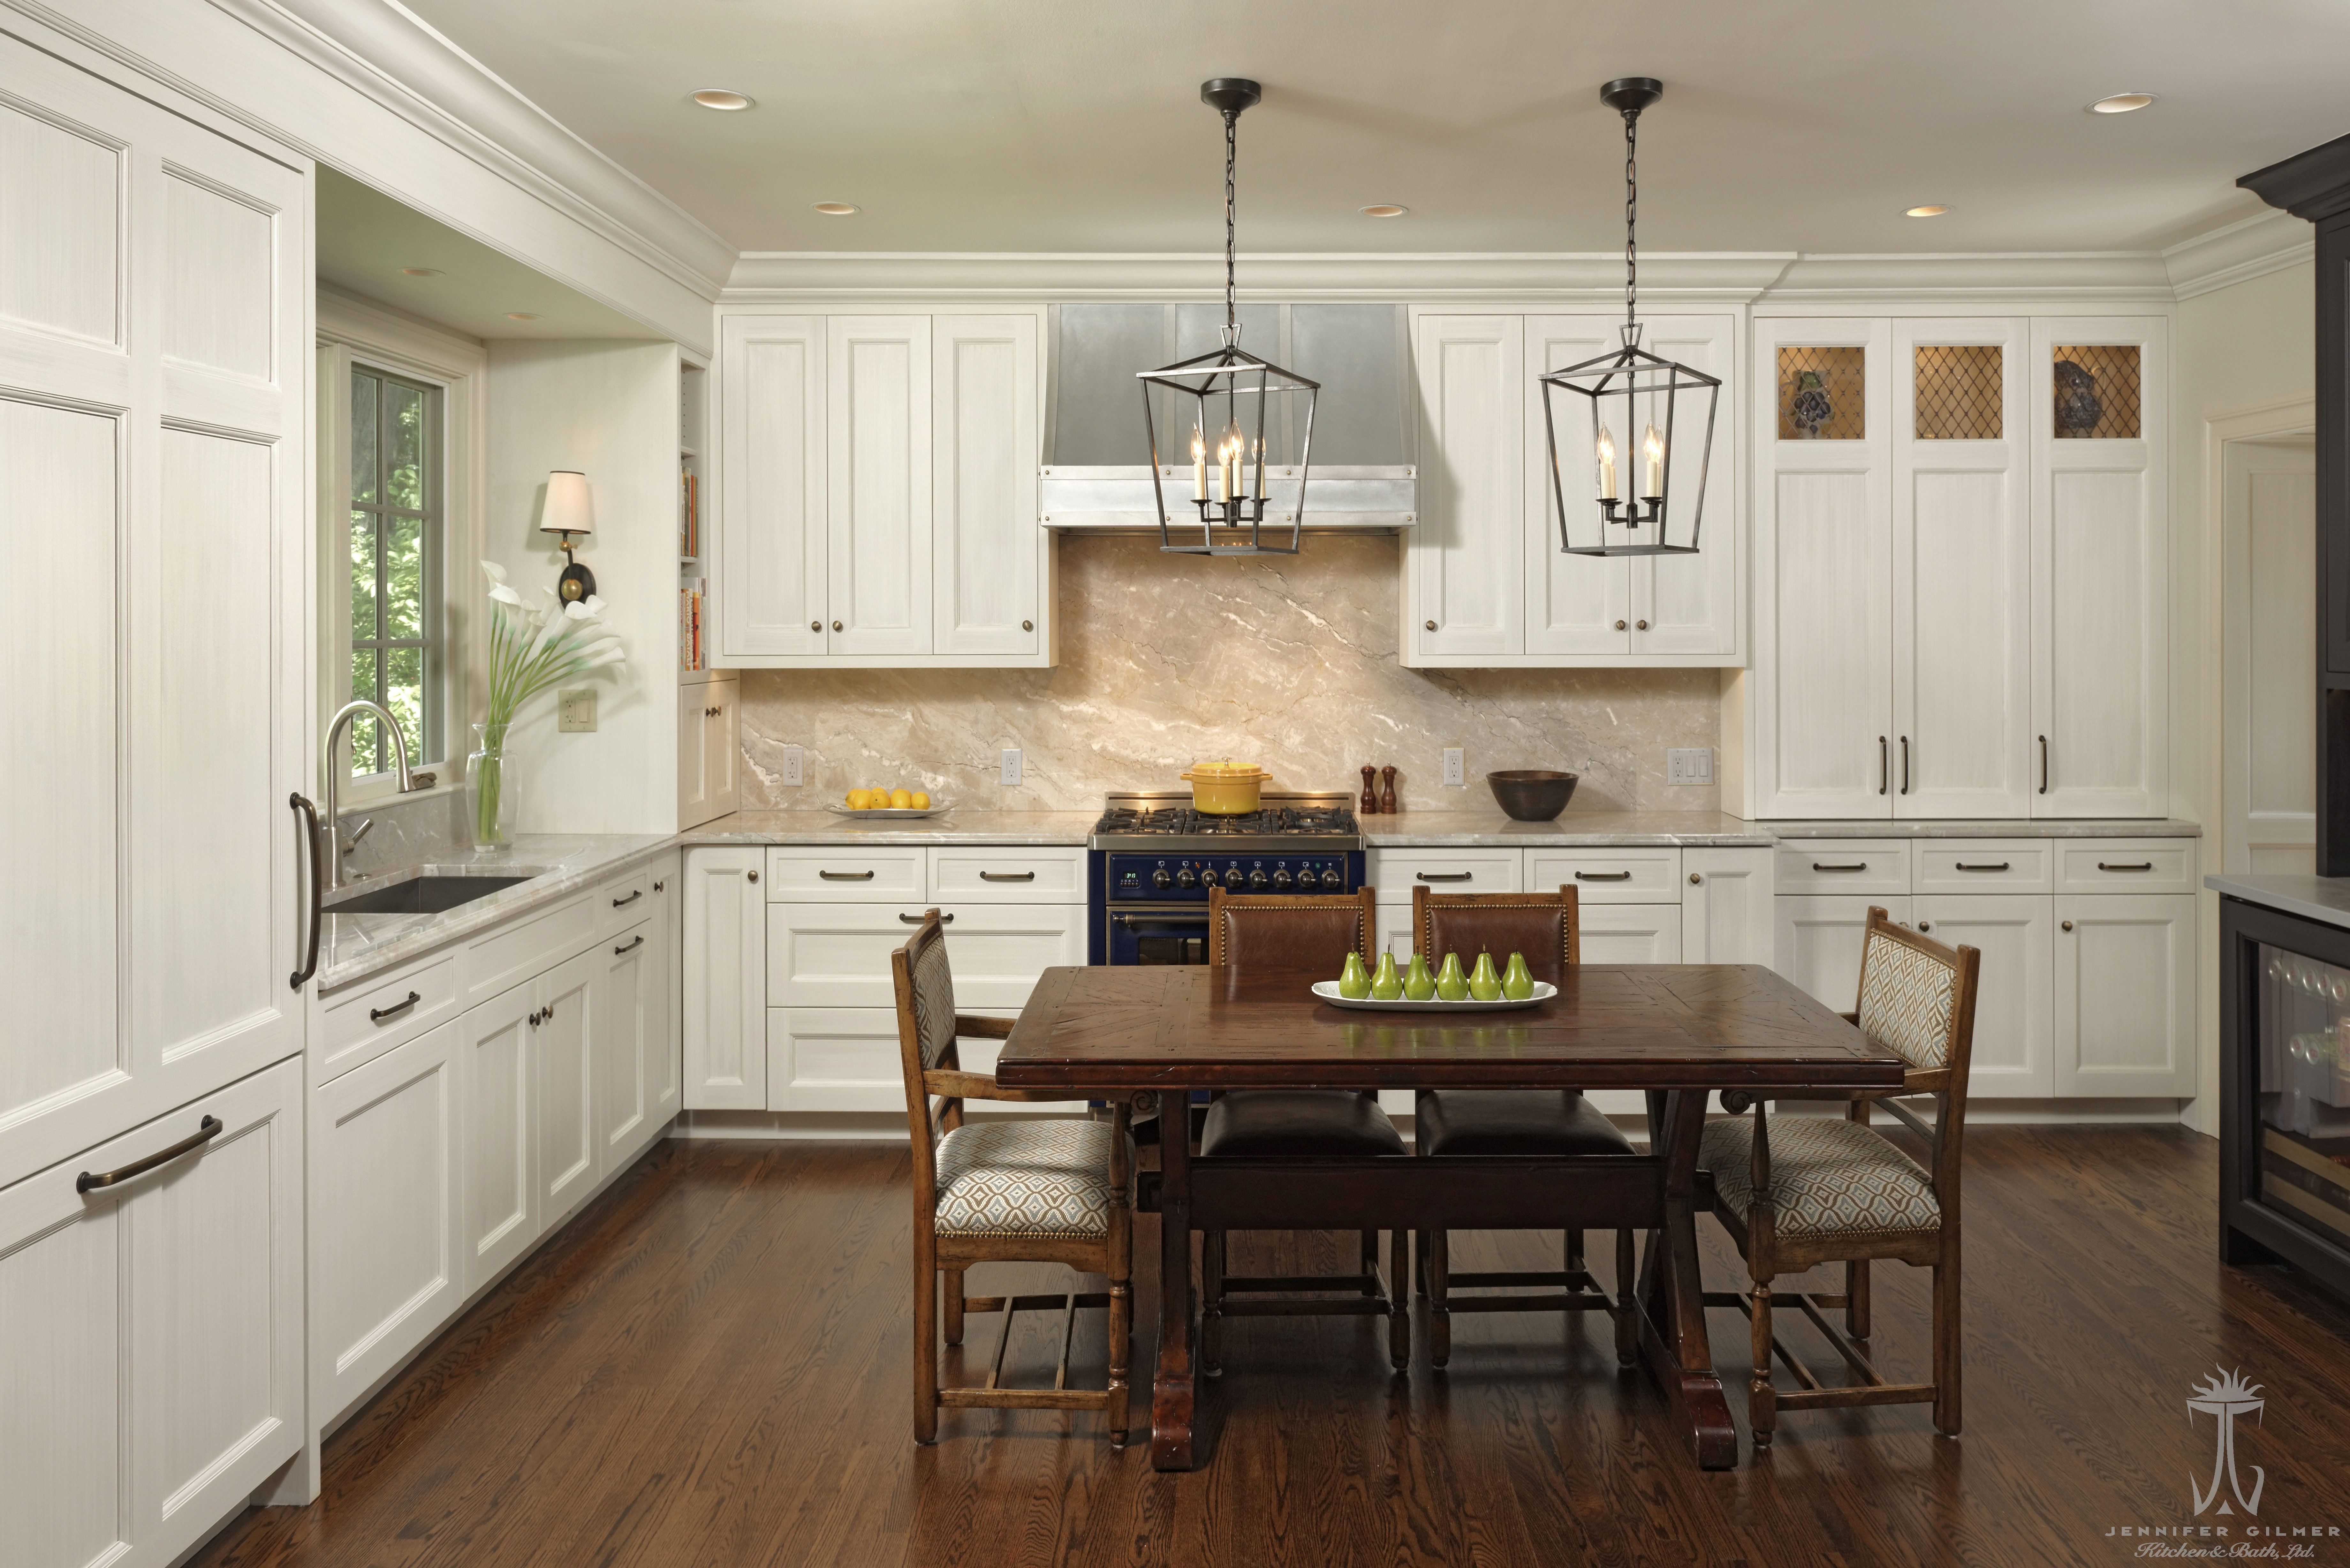 Designer Meghan Browne, From Jennifer Gilmer Kitchen U0026 Bath Ltd., Flipped  This Cluttered Space Into A Breathtaking Kitchen. Wanting To Keep Family At  The ...